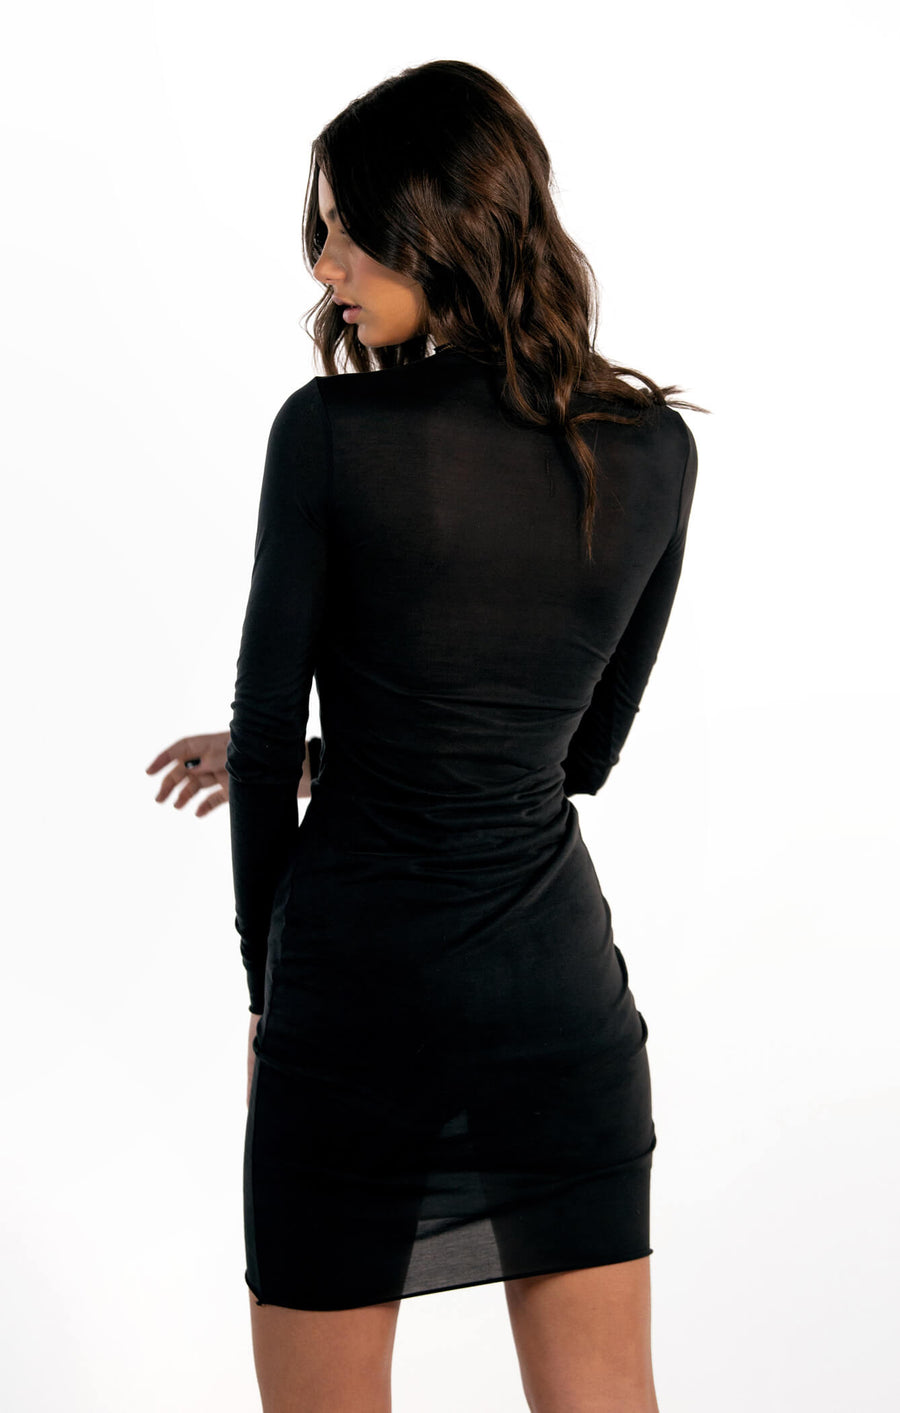 THE MODAL LONG SLEEVE DRESS